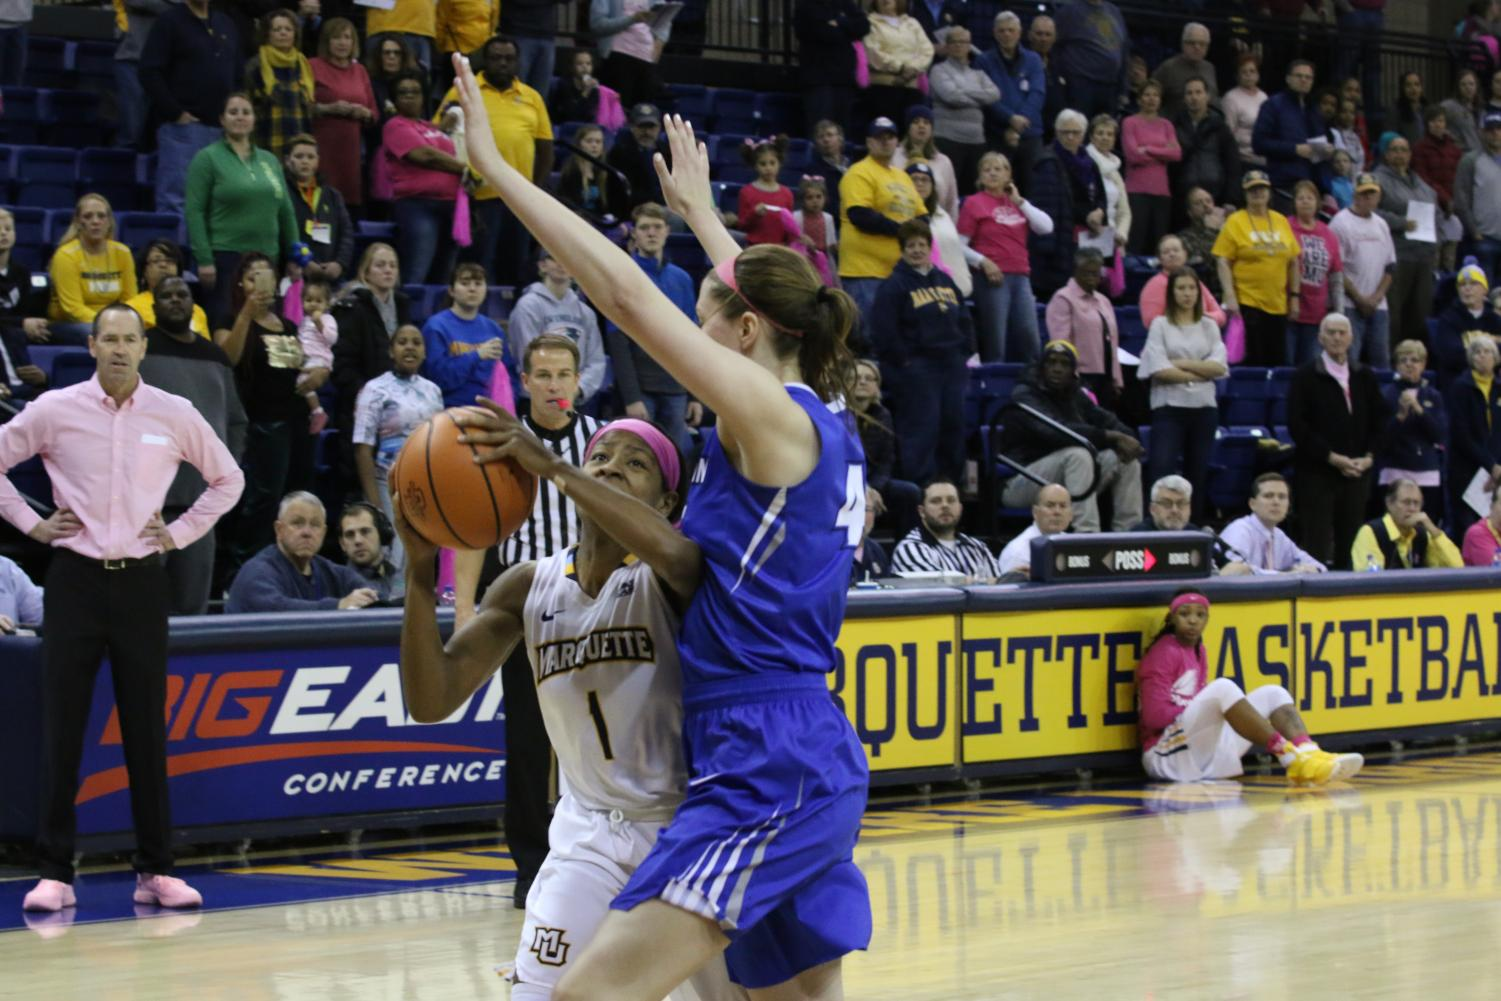 Junior Danielle King goes up for a shot under duress from the Creighton defense.